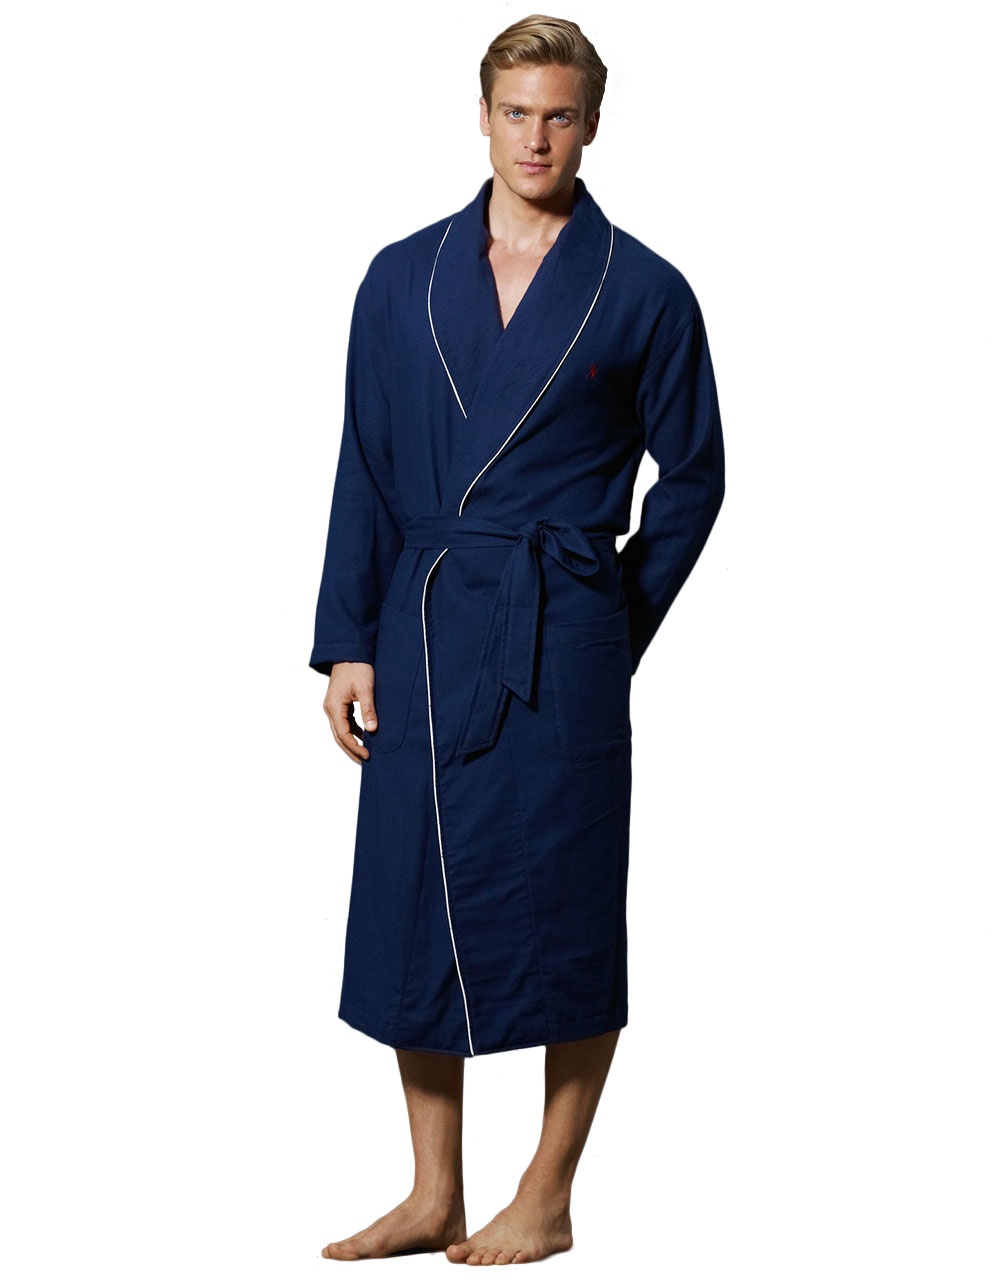 polo ralph lauren belted plaid cotton robe in blue for men navy lyst. Black Bedroom Furniture Sets. Home Design Ideas